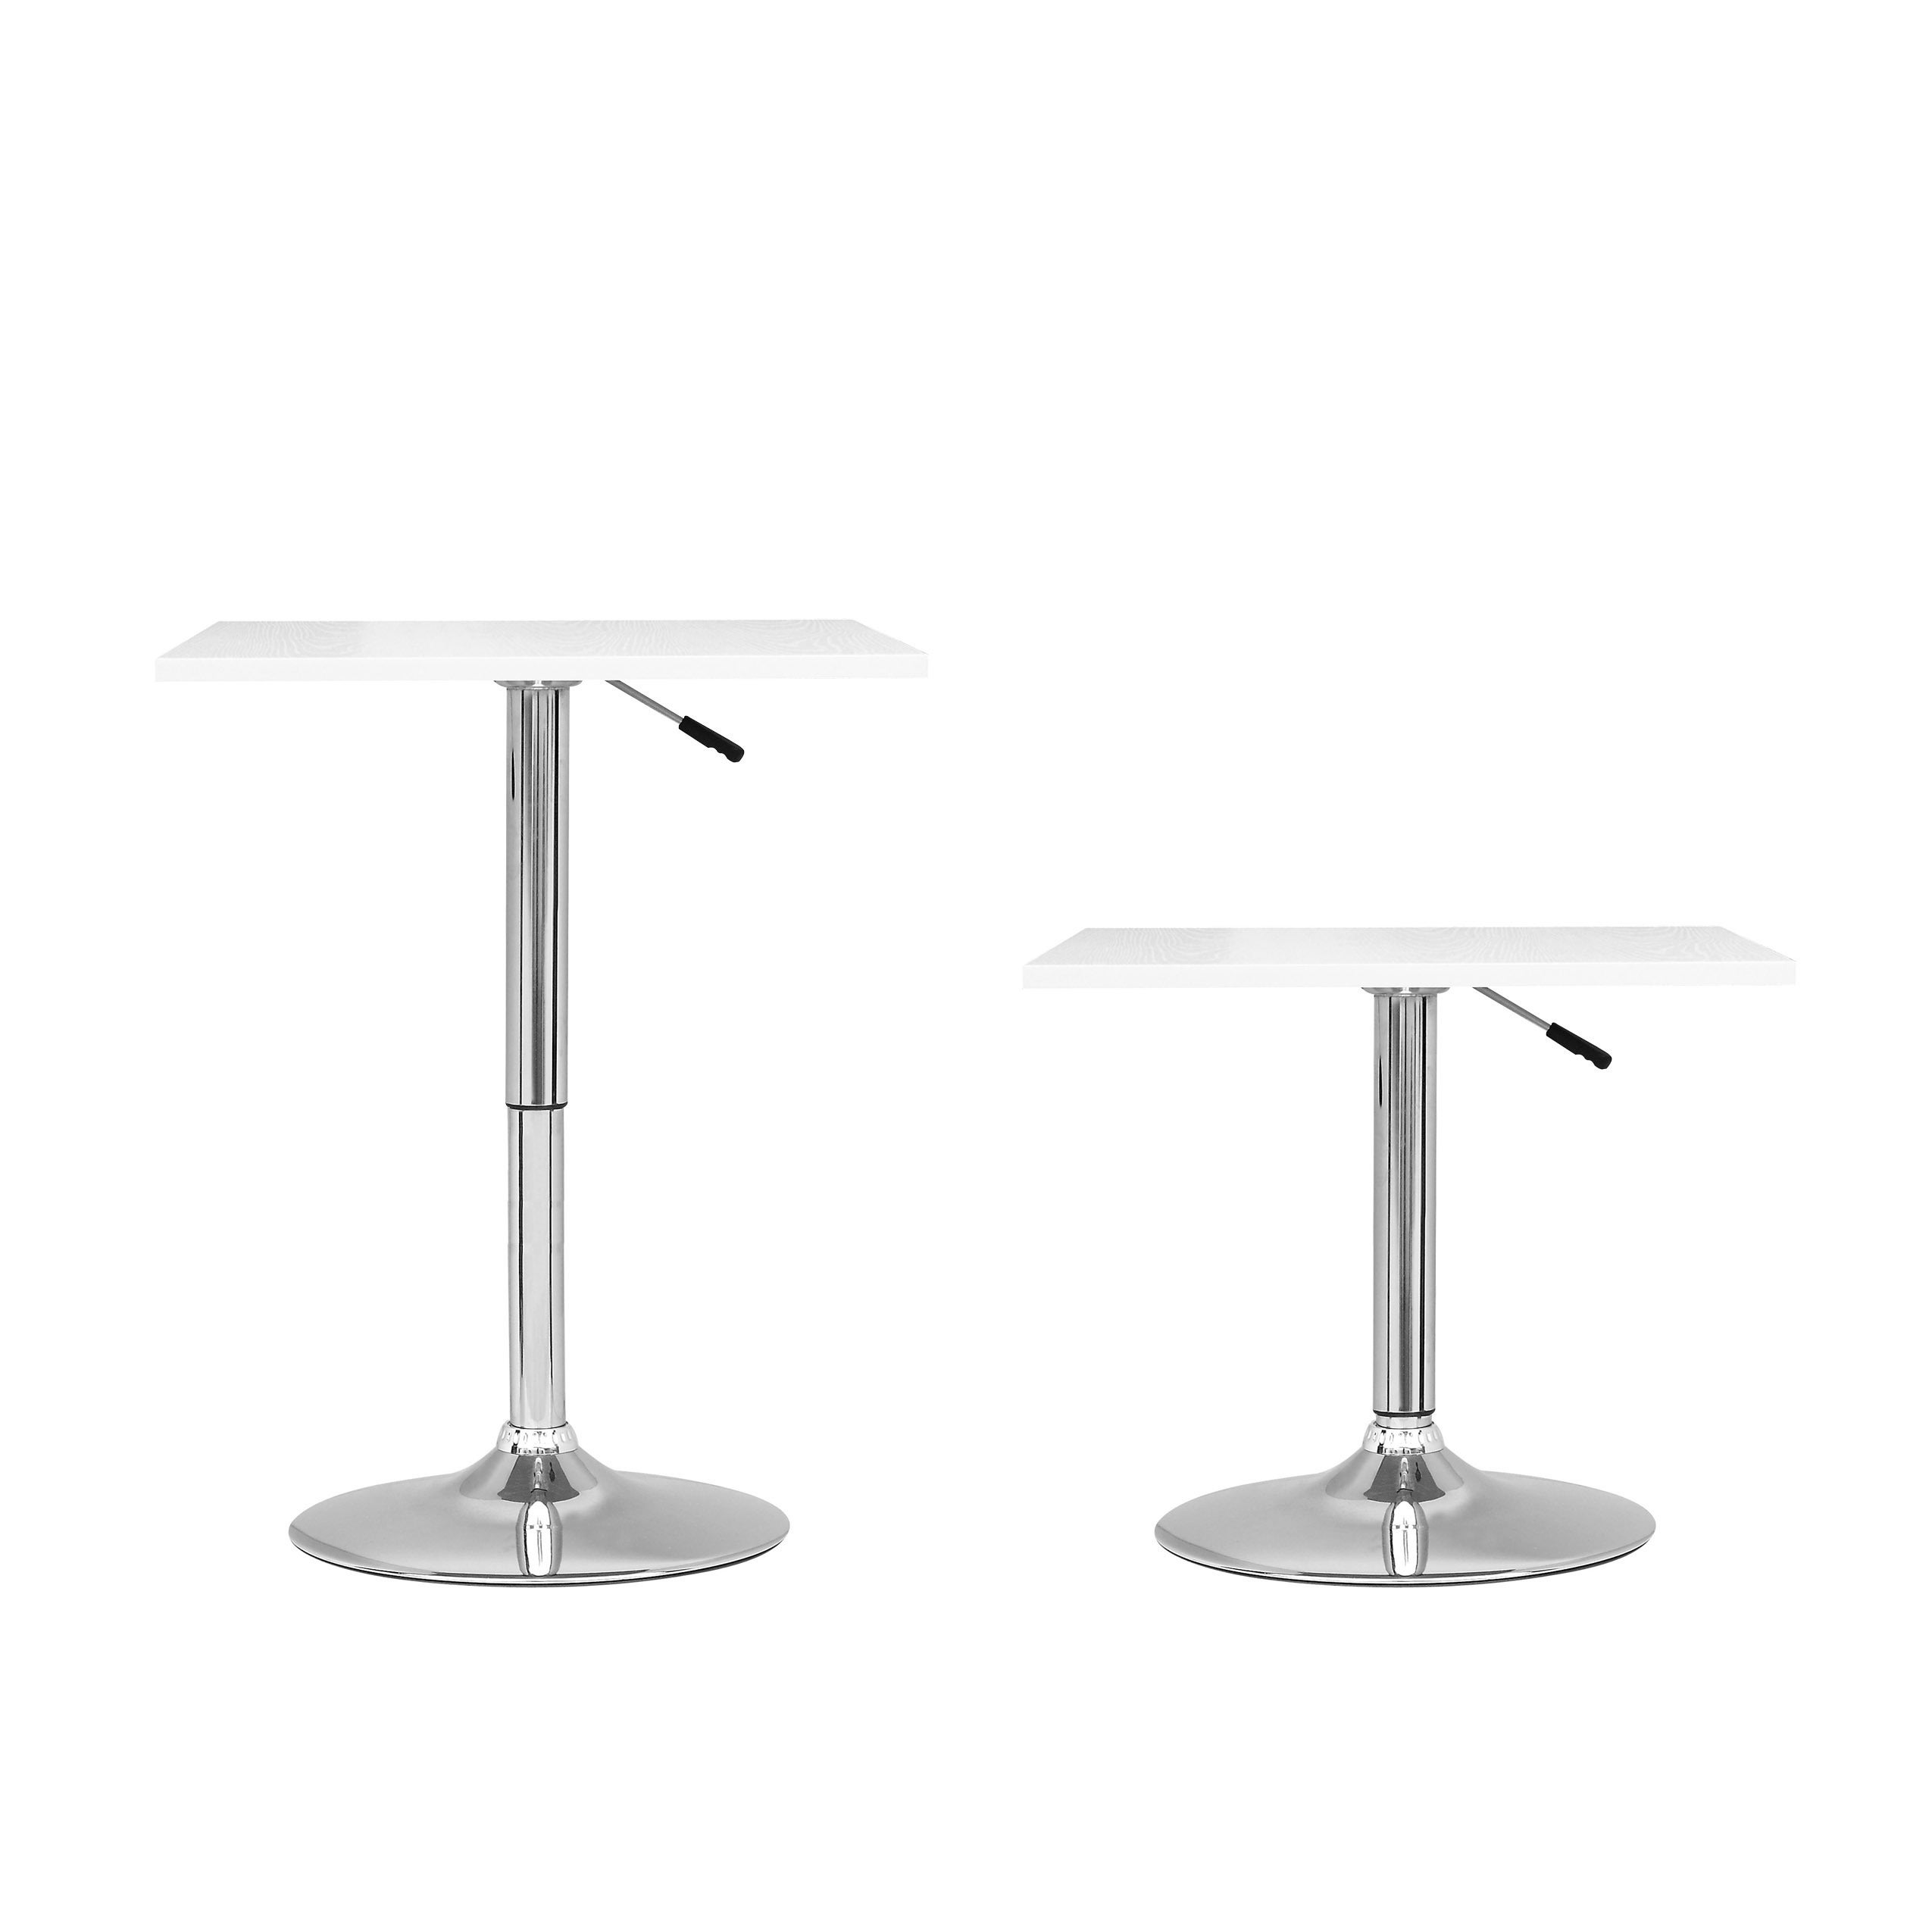 Corliving Adjule Height Square Bar Table Free Shipping Today 16342605